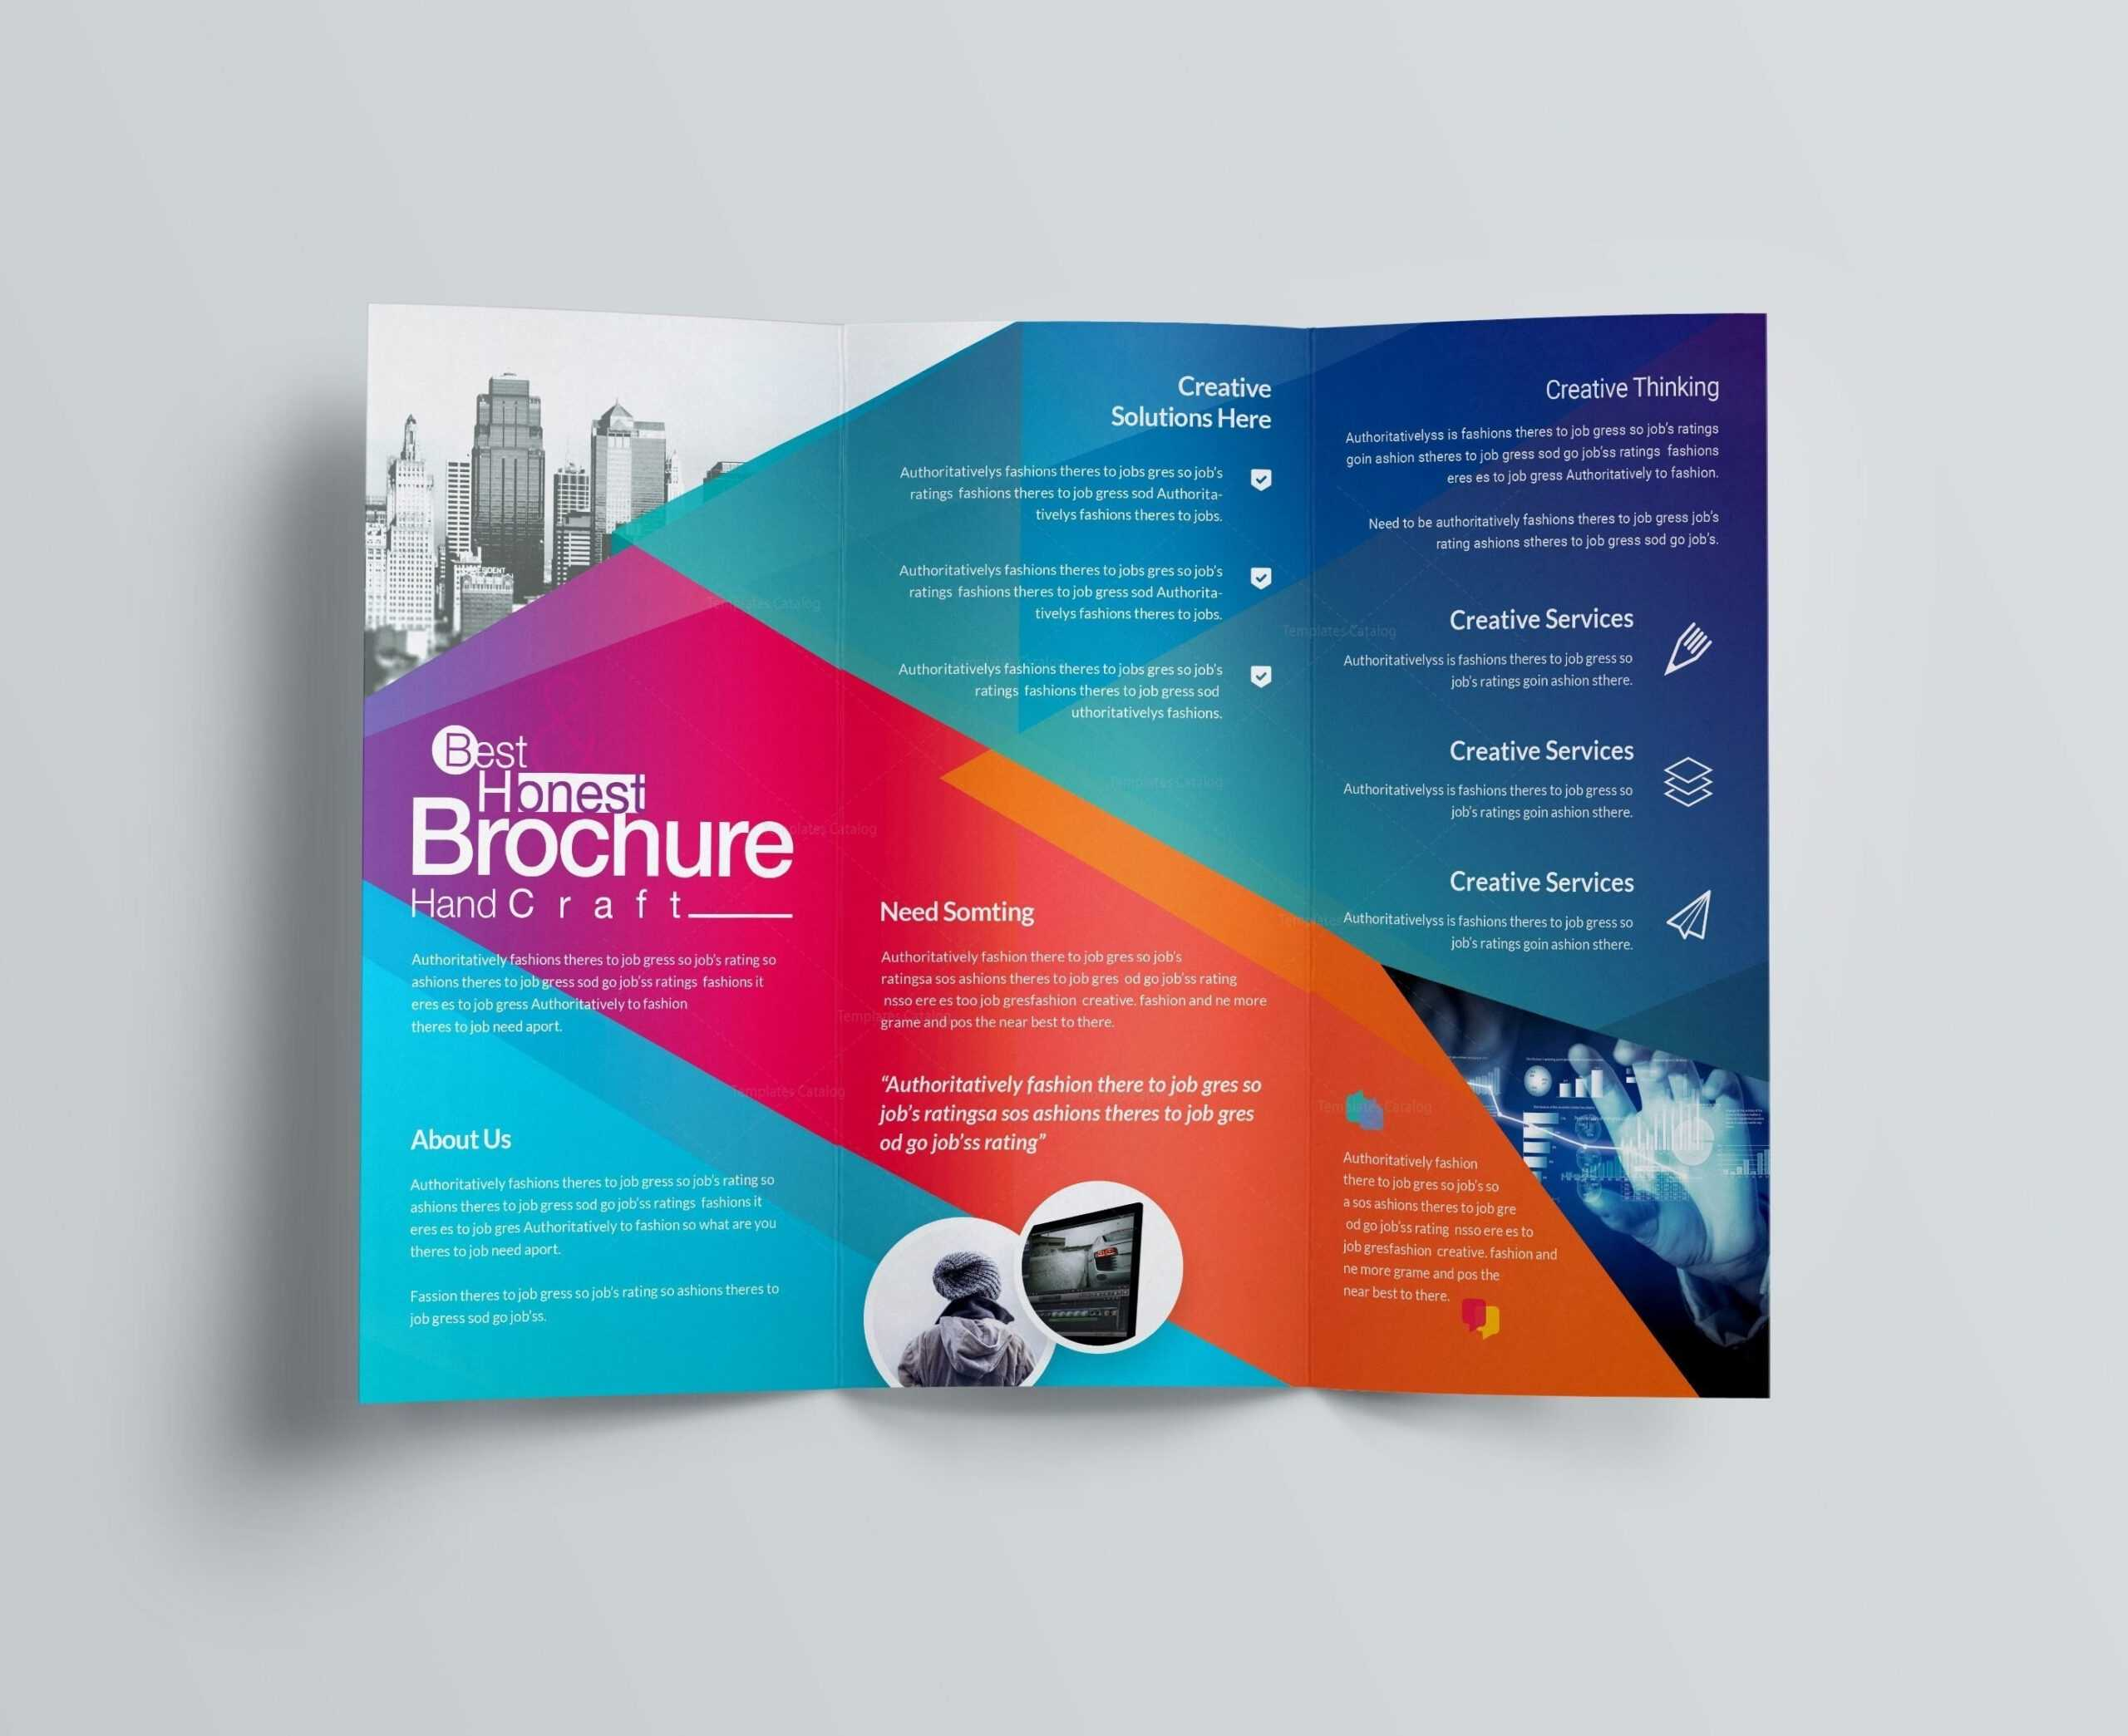 026 Health Fair Flyer Template Free Download Mac Brochure pertaining to Microsoft Word Brochure Template Free